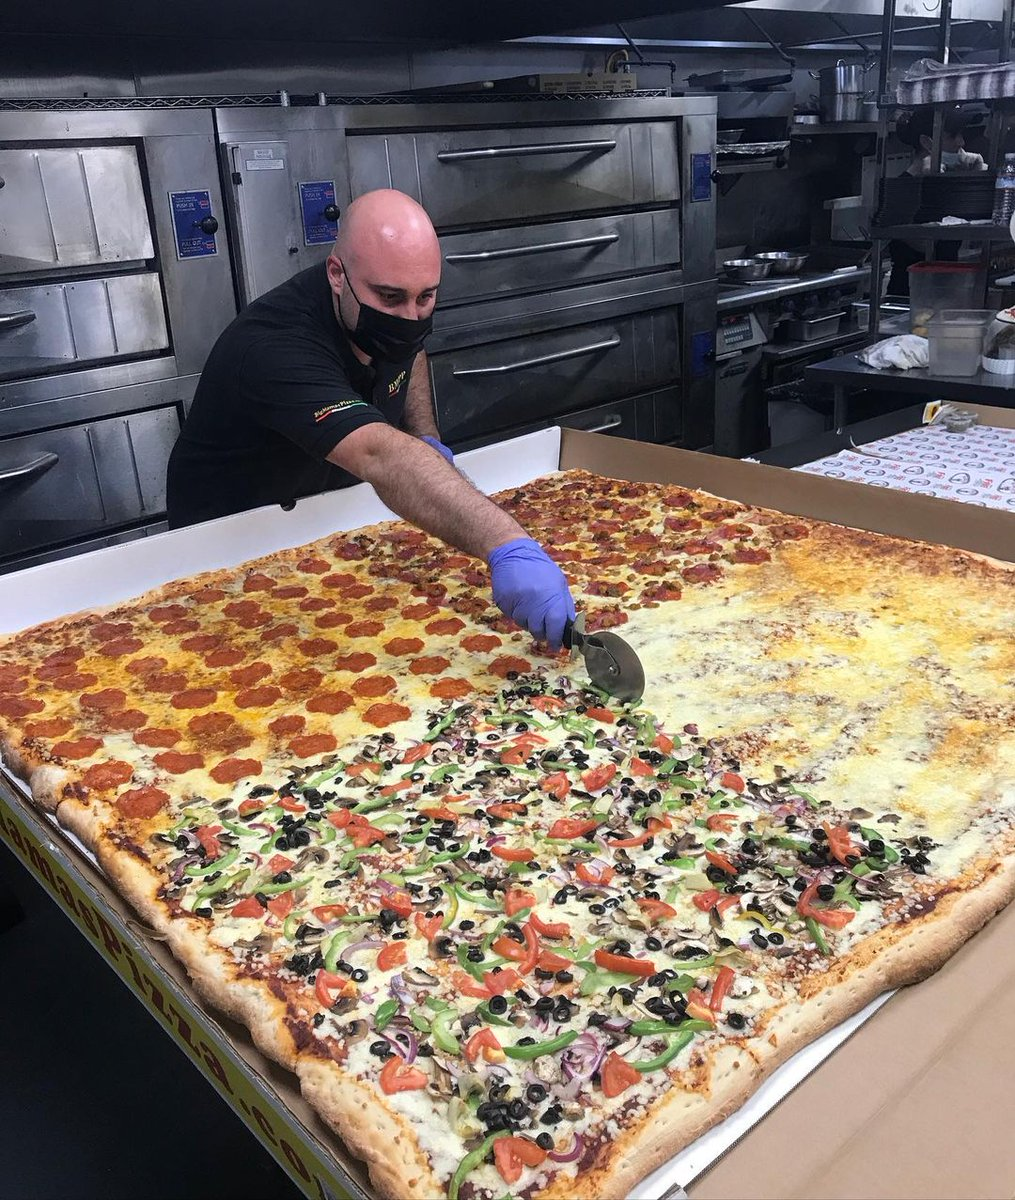 "Burbank staple @bmppburbank is ready for pickup with their delicious pizzas. Only here can you order a 54""x54"" giant pizza. Who doesn't love leftovers? #visitburbank #dineburbank #dinelocal #pizza #gratefultable #burbanktogether #dinela #supportlocal"